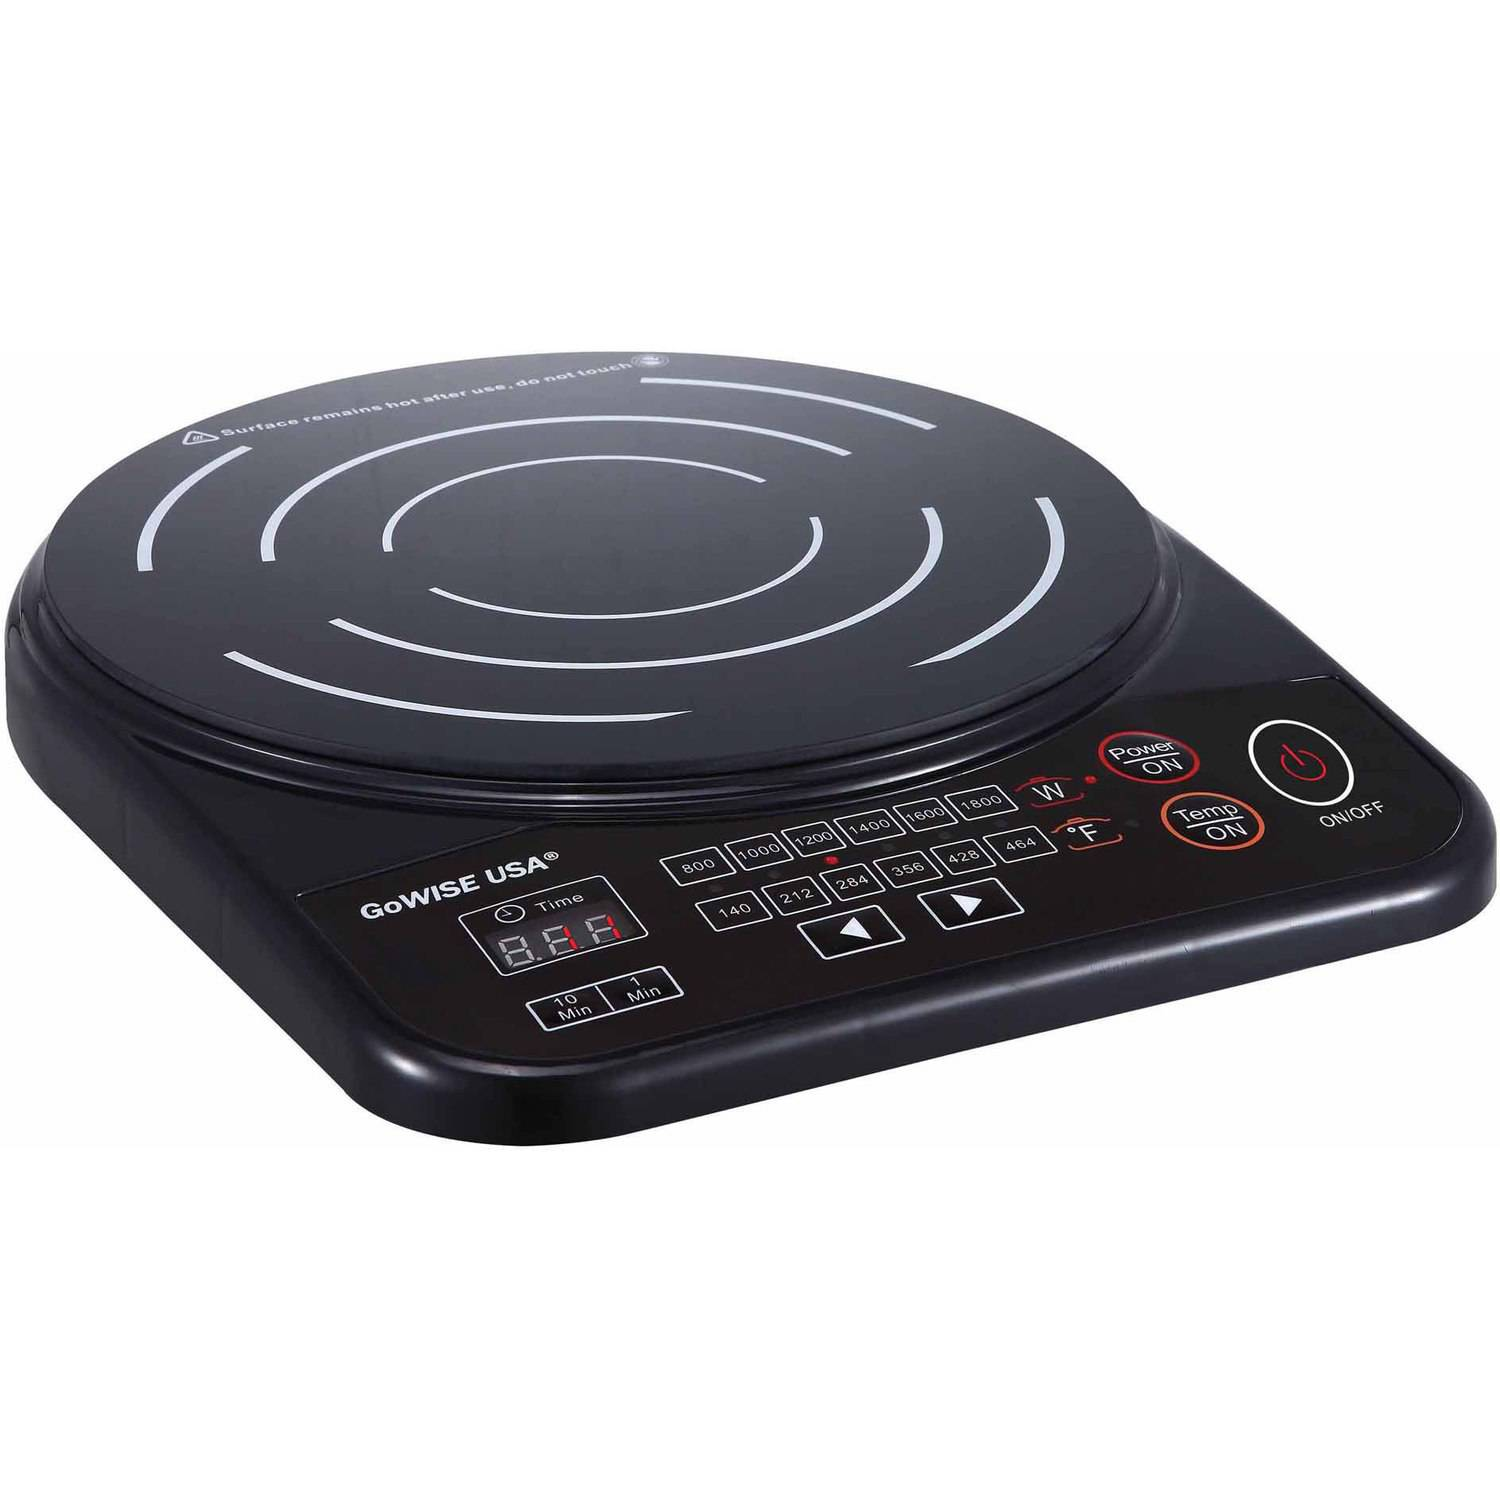 Ming's Mark GW22616 Portable Induction Cooktop with Stainless Steel Pan